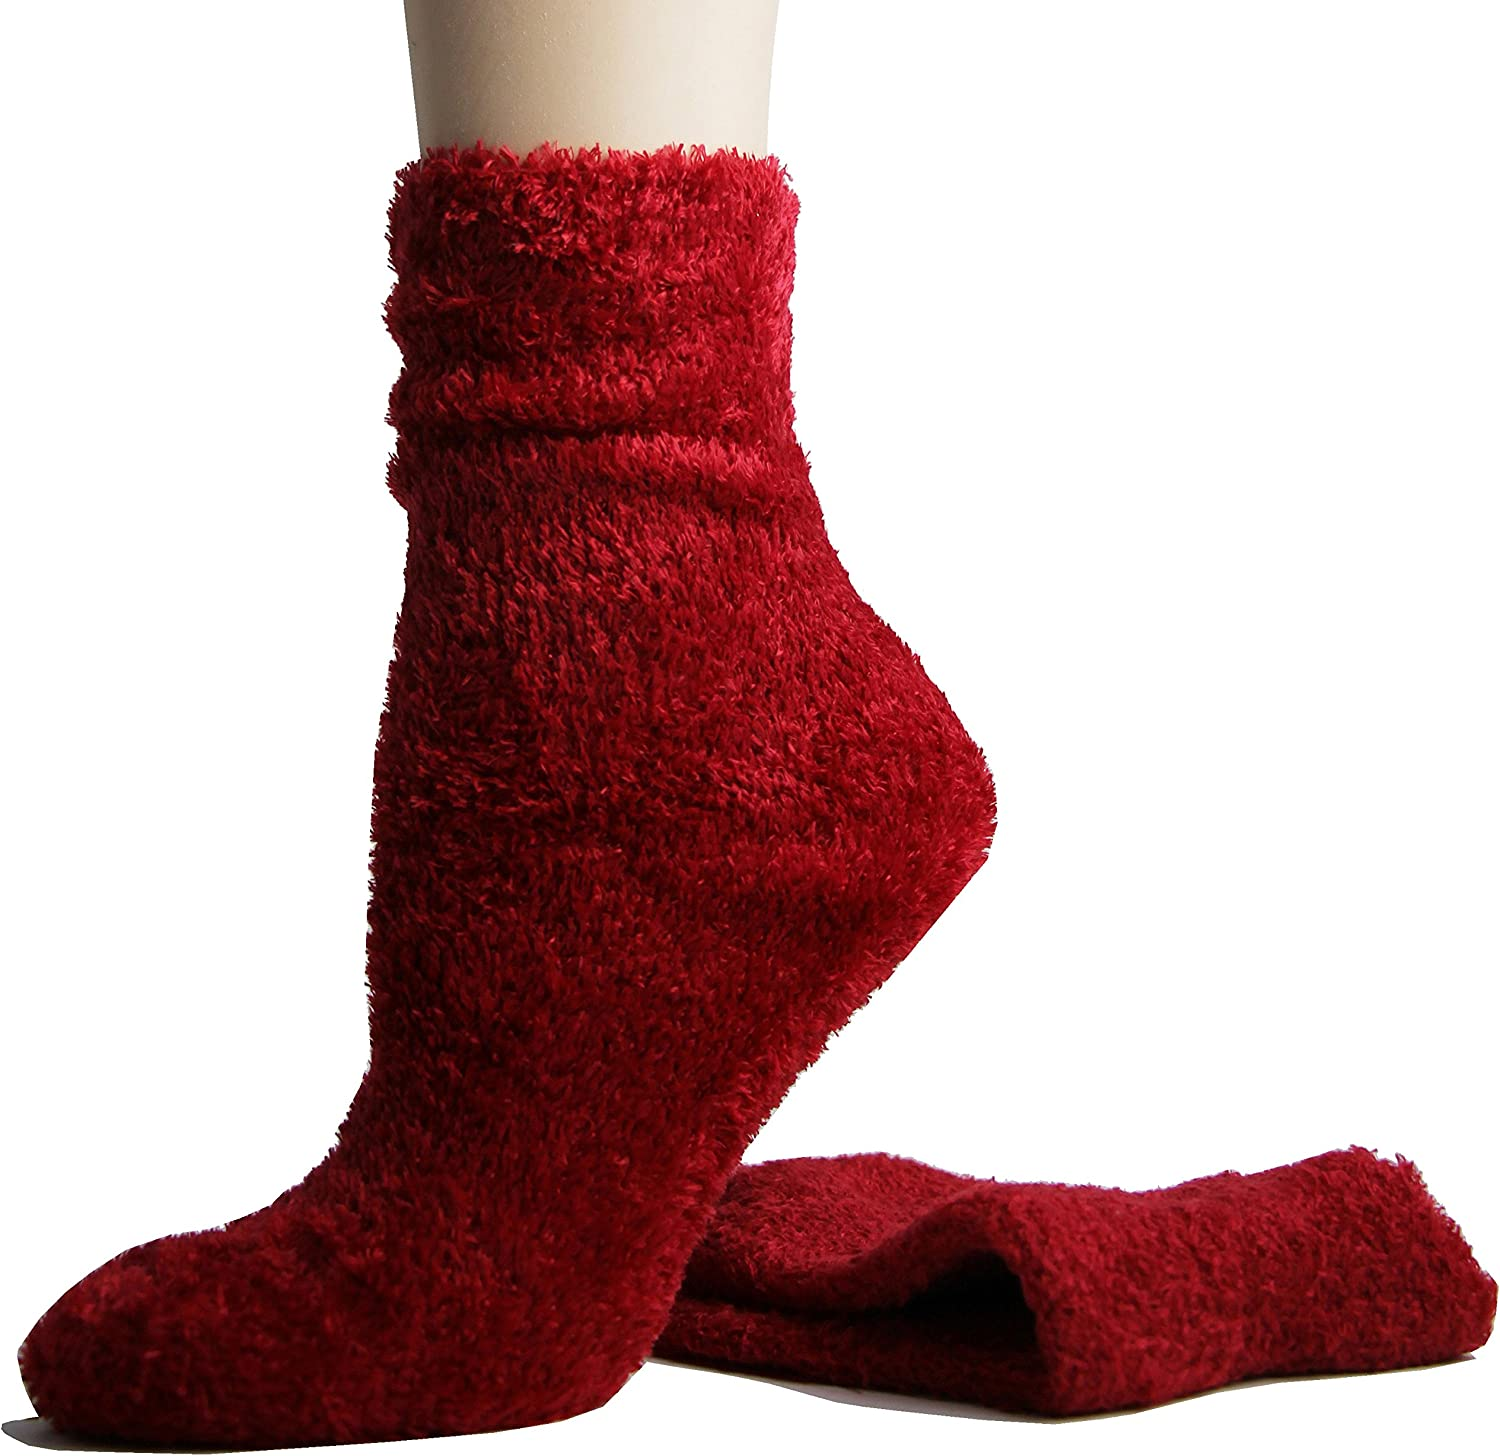 Foot Traffic, Cozy Fuzzy Microfiber Socks